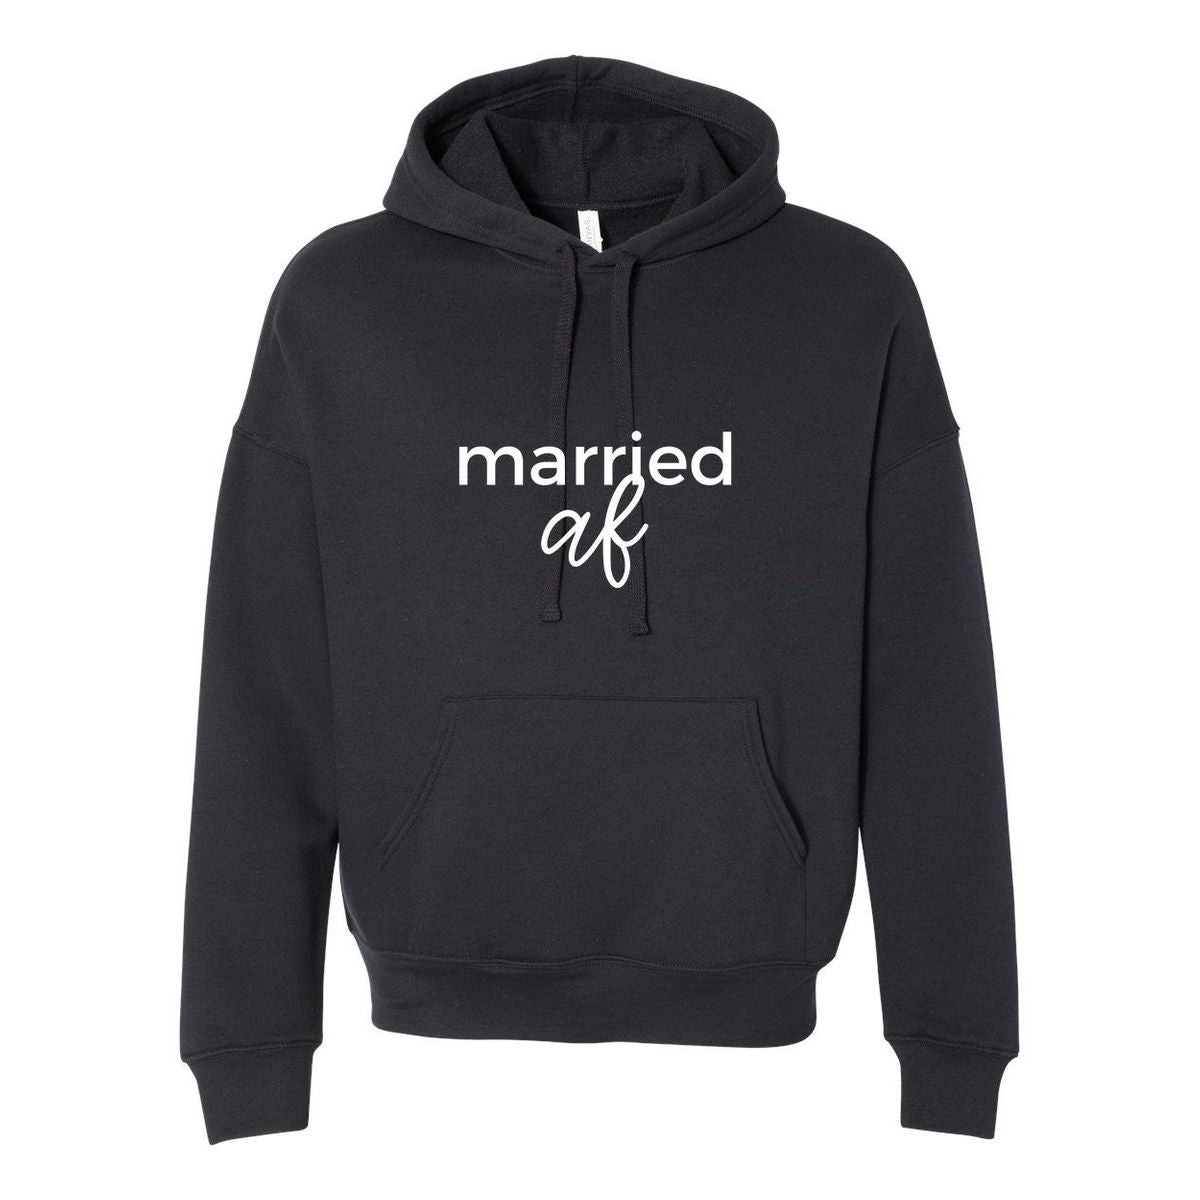 Married Af Unisex Hoodie Sweatshirt